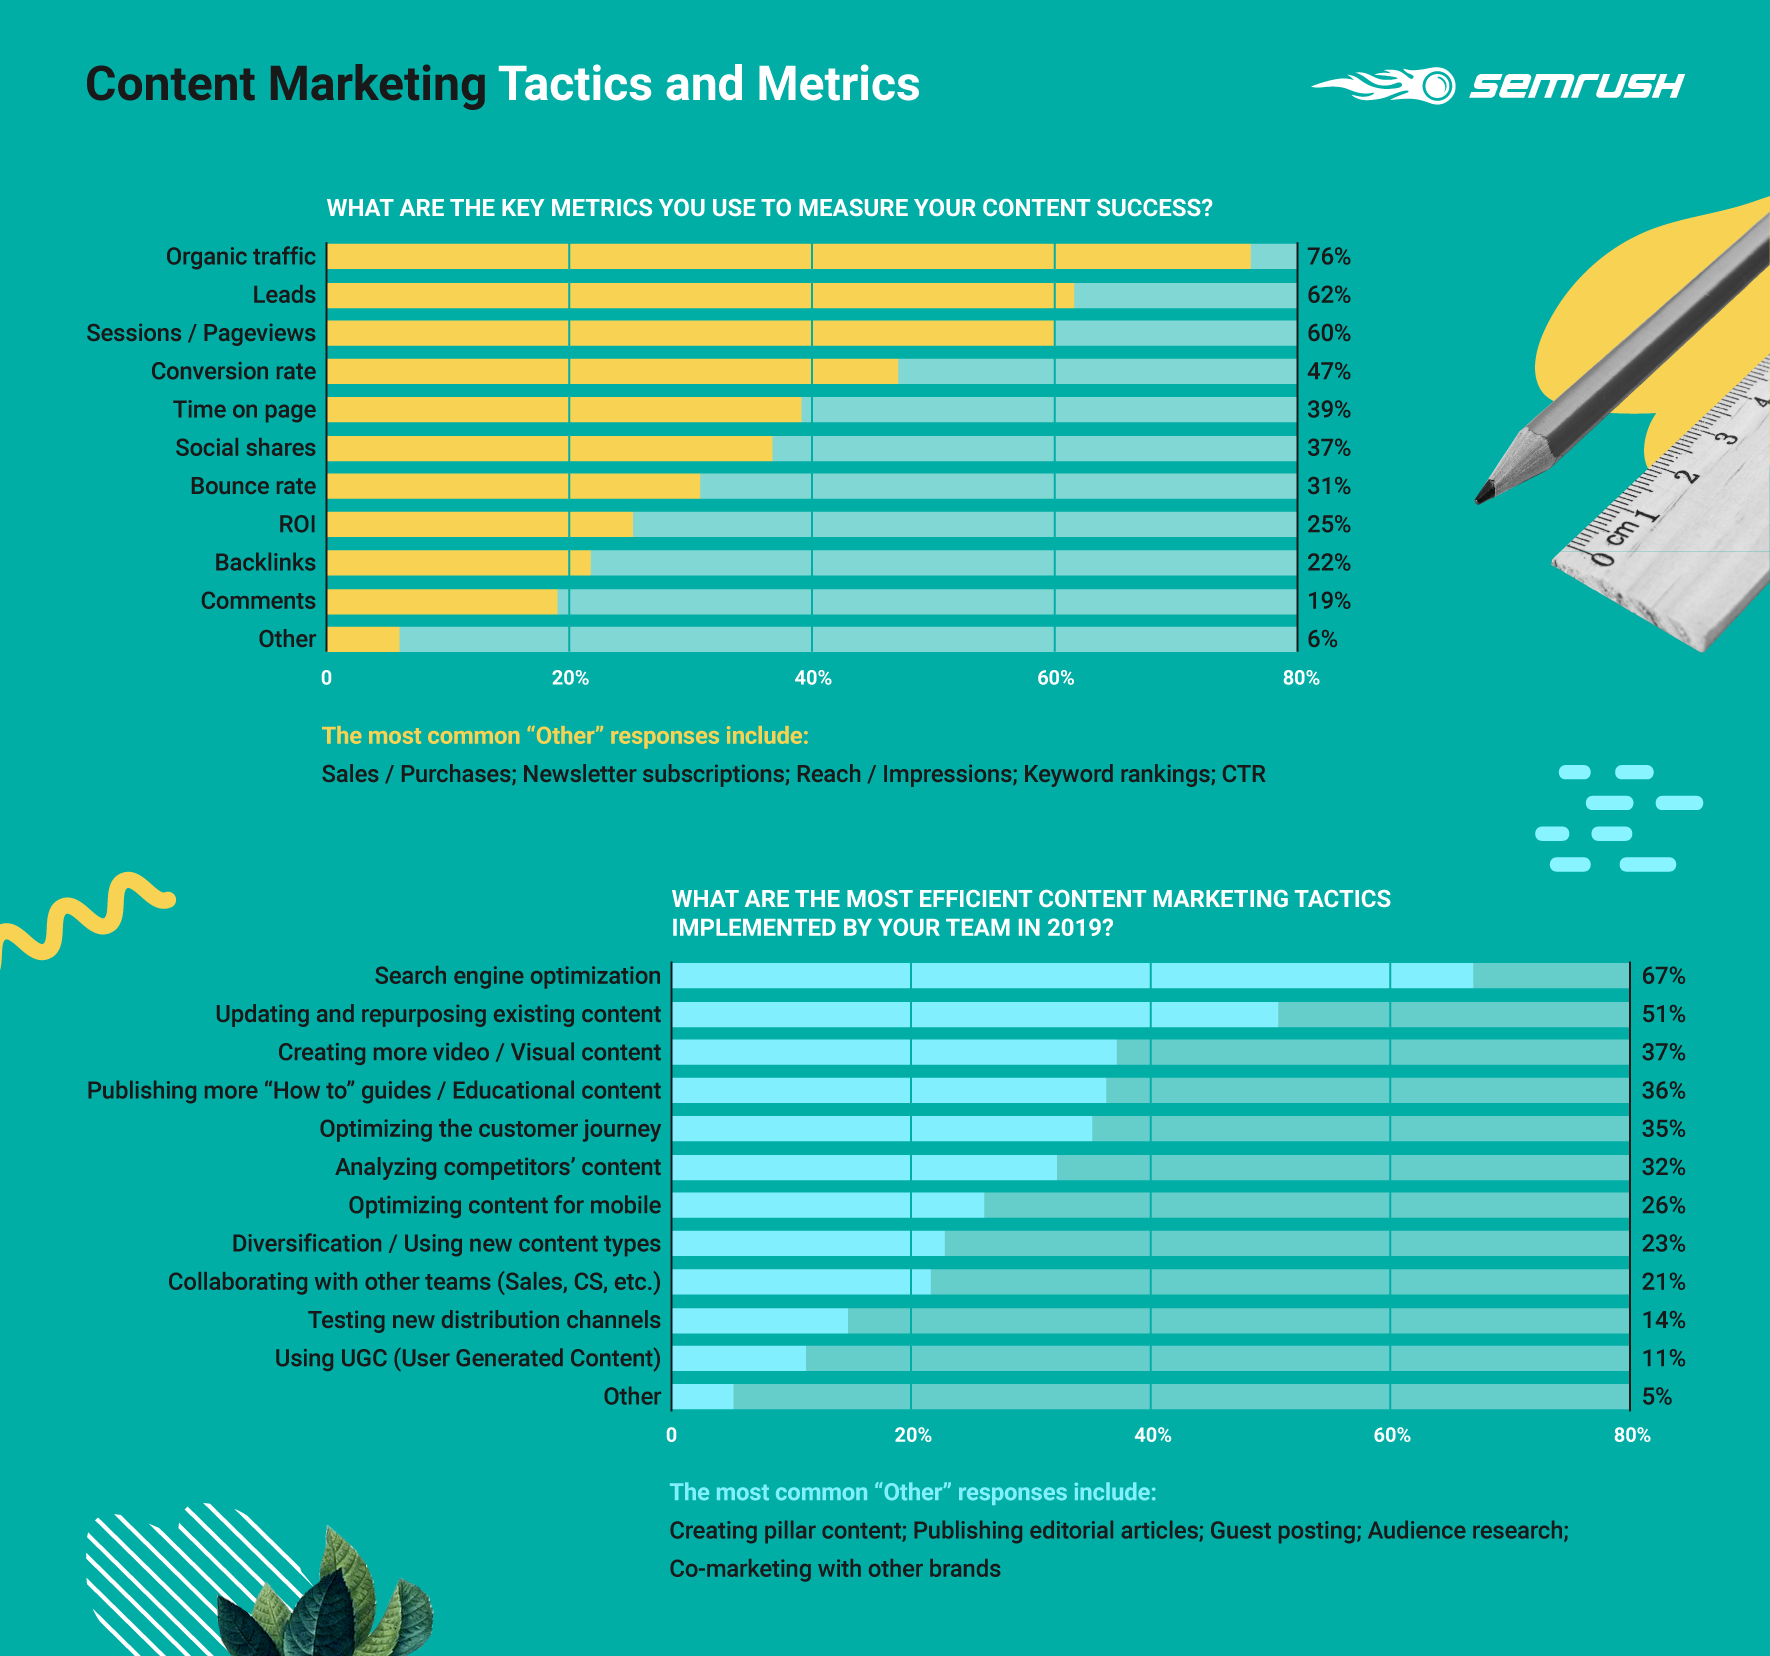 Content Marketing Tactics and Metrics Survey results